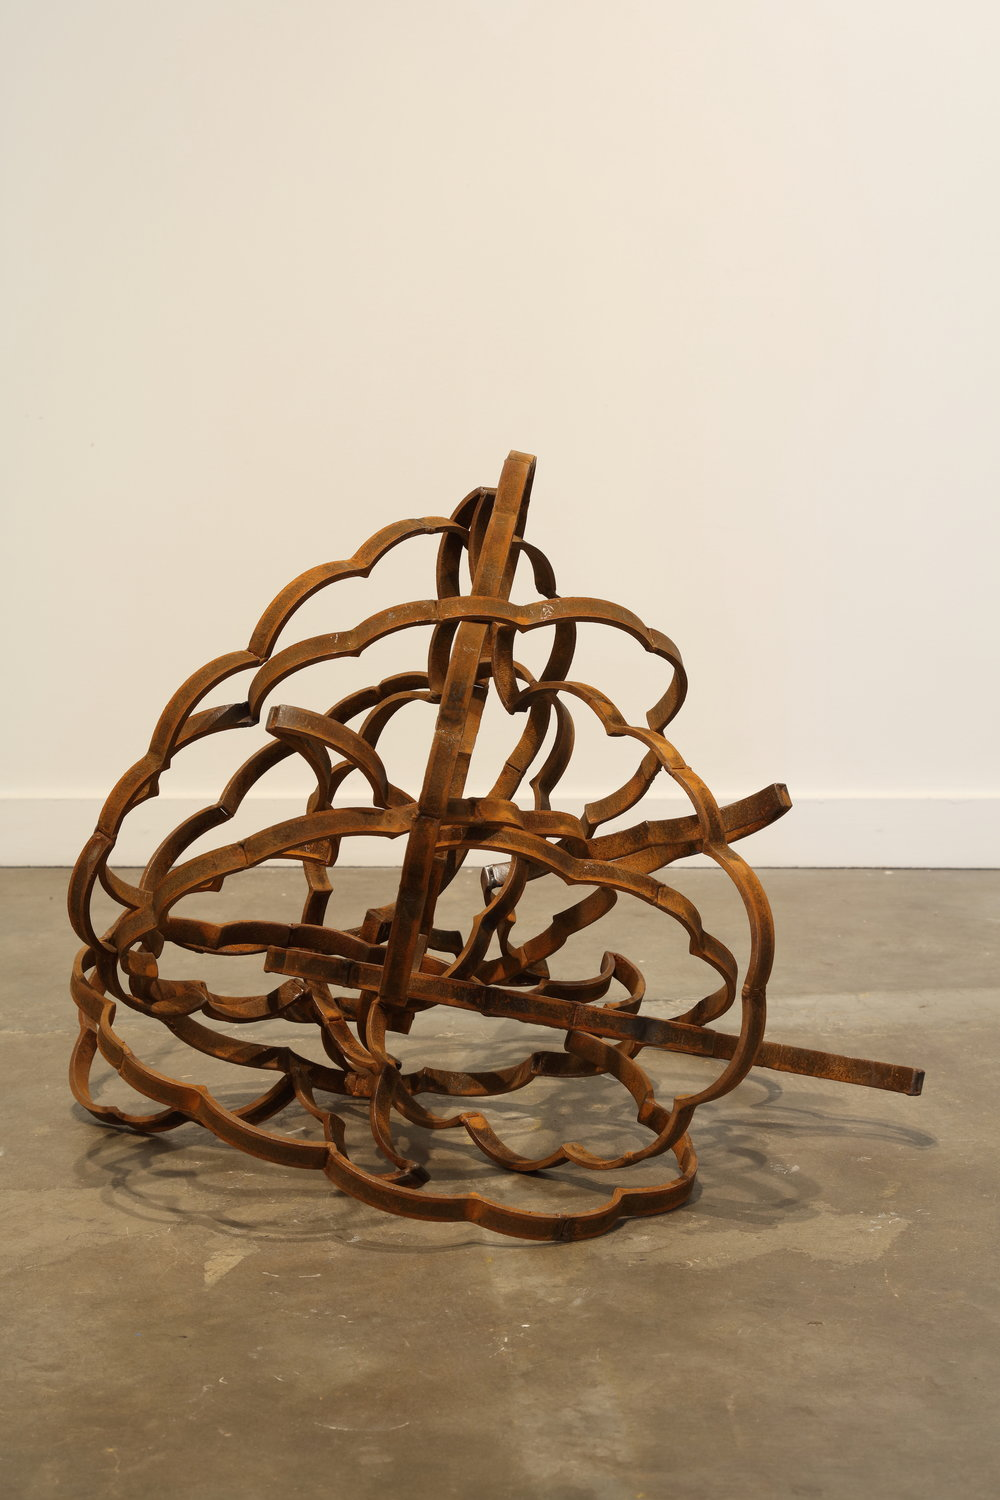 Tumbleweed,  2014 Steel 33H x 33W x 33D inches